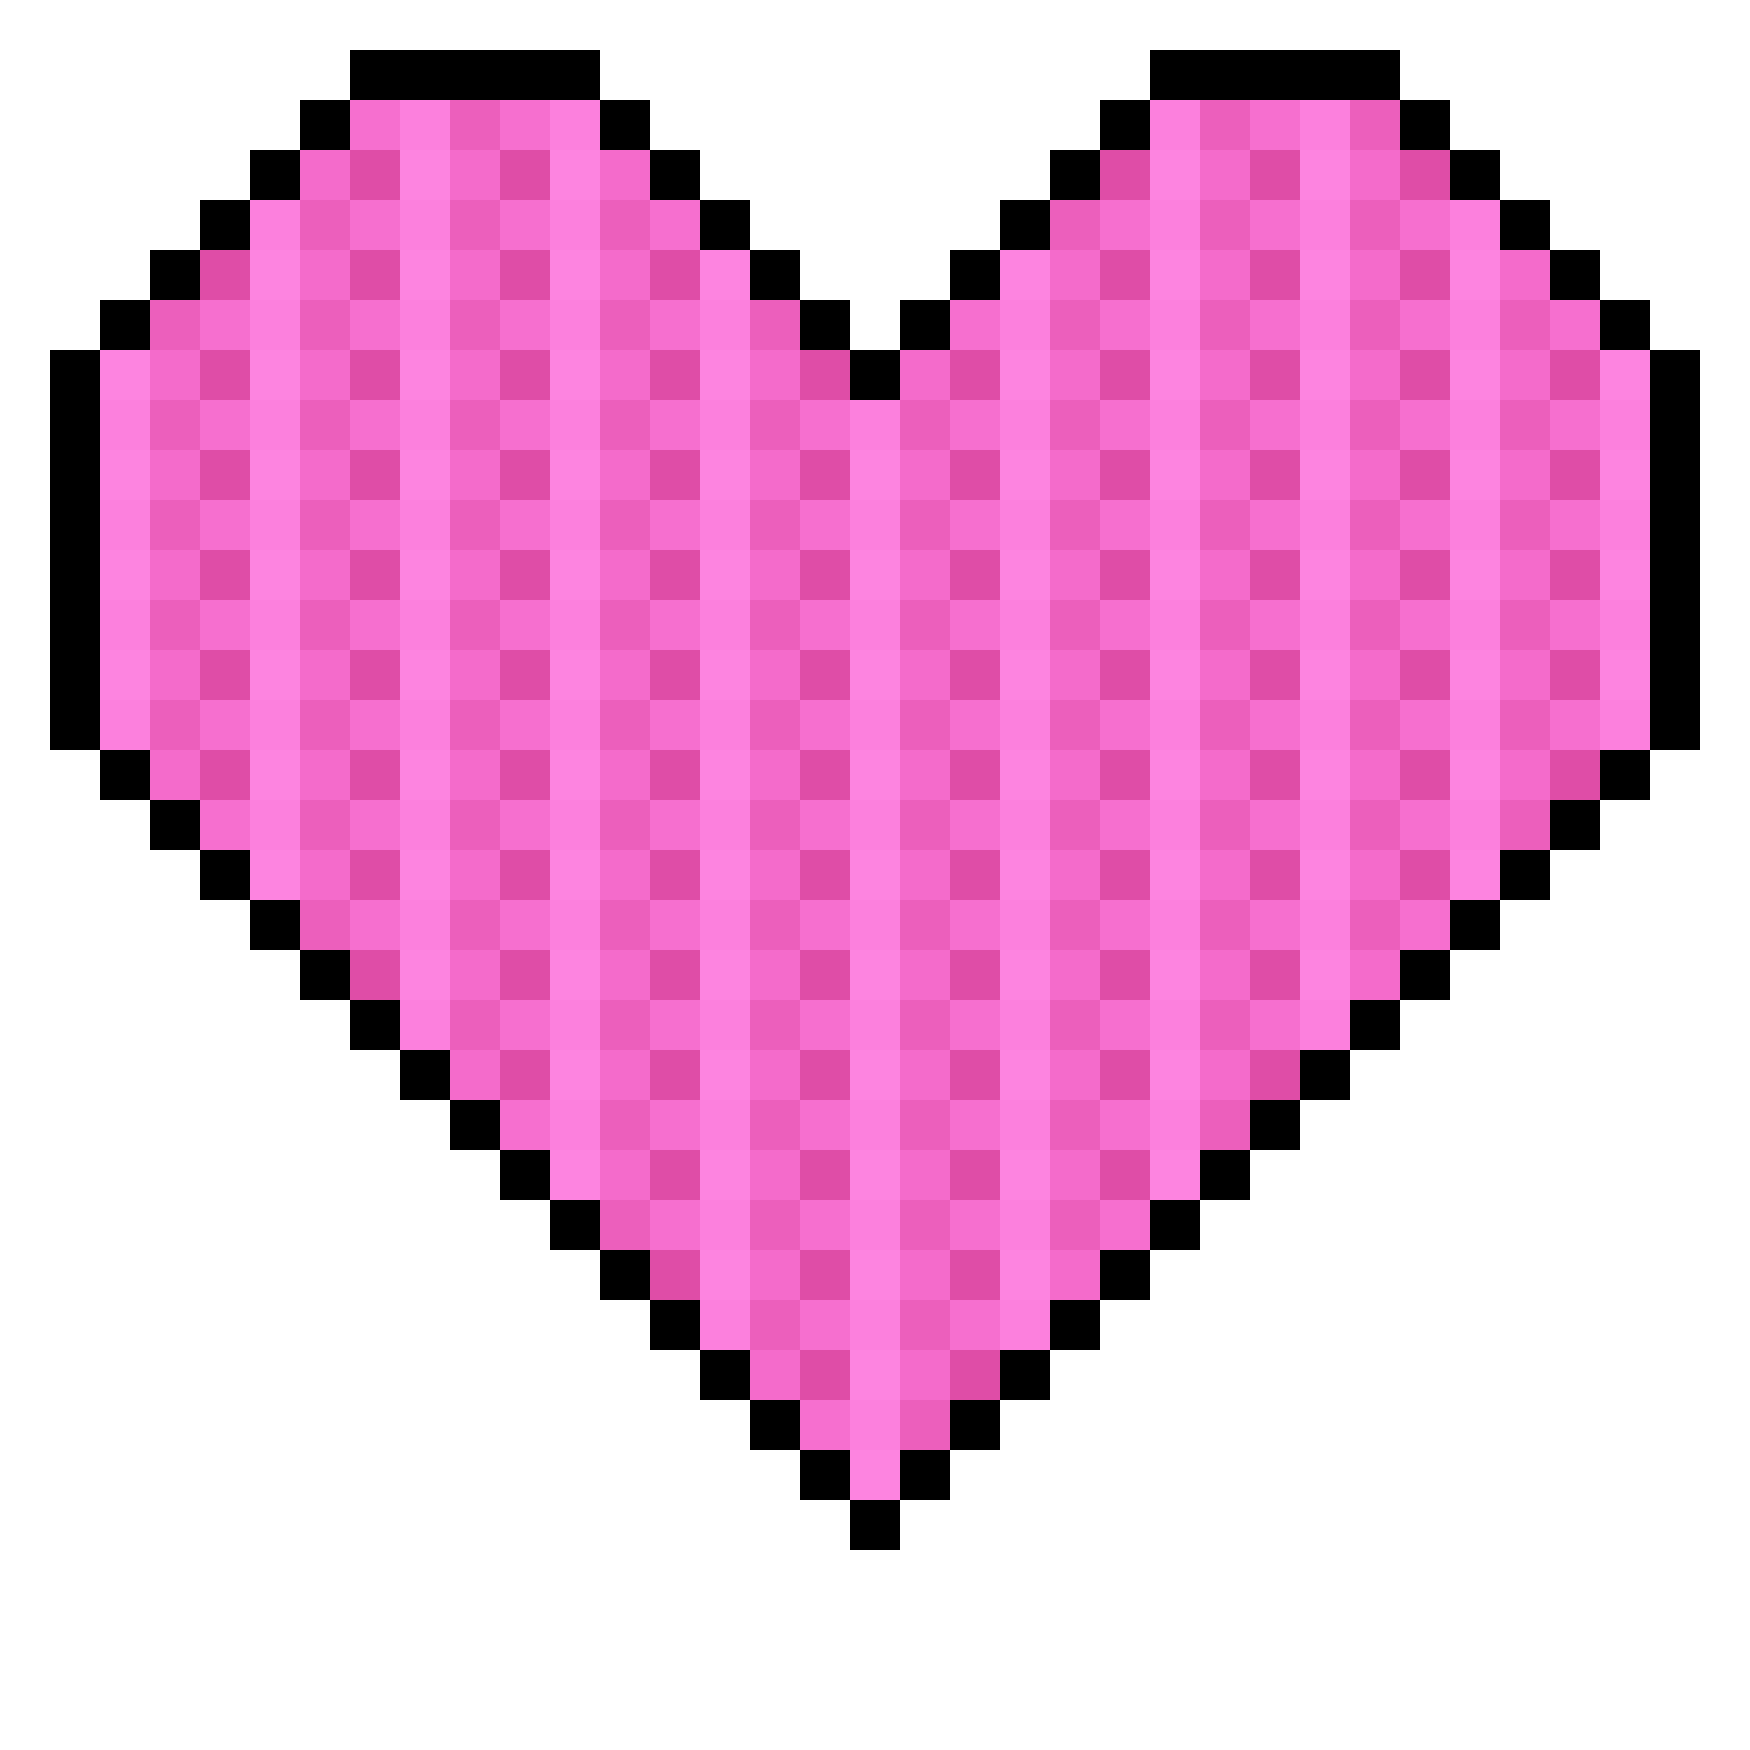 Pixel heart clipart transparent download Pixel Art Heart Clipart transparent download